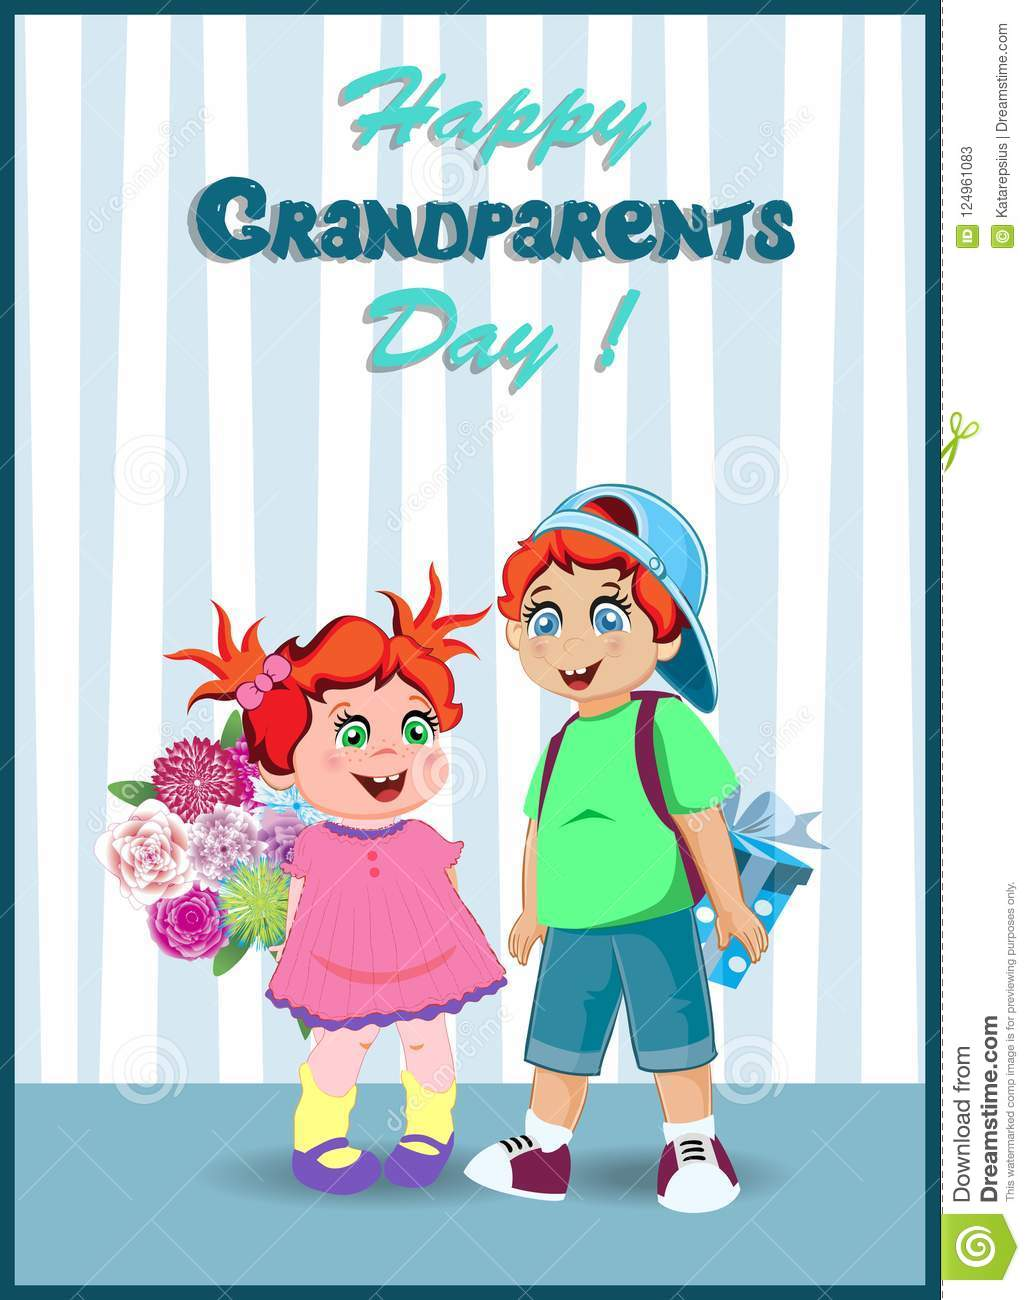 Cartoon Vector Illustration Of Grandchildren With Flowers And Gift